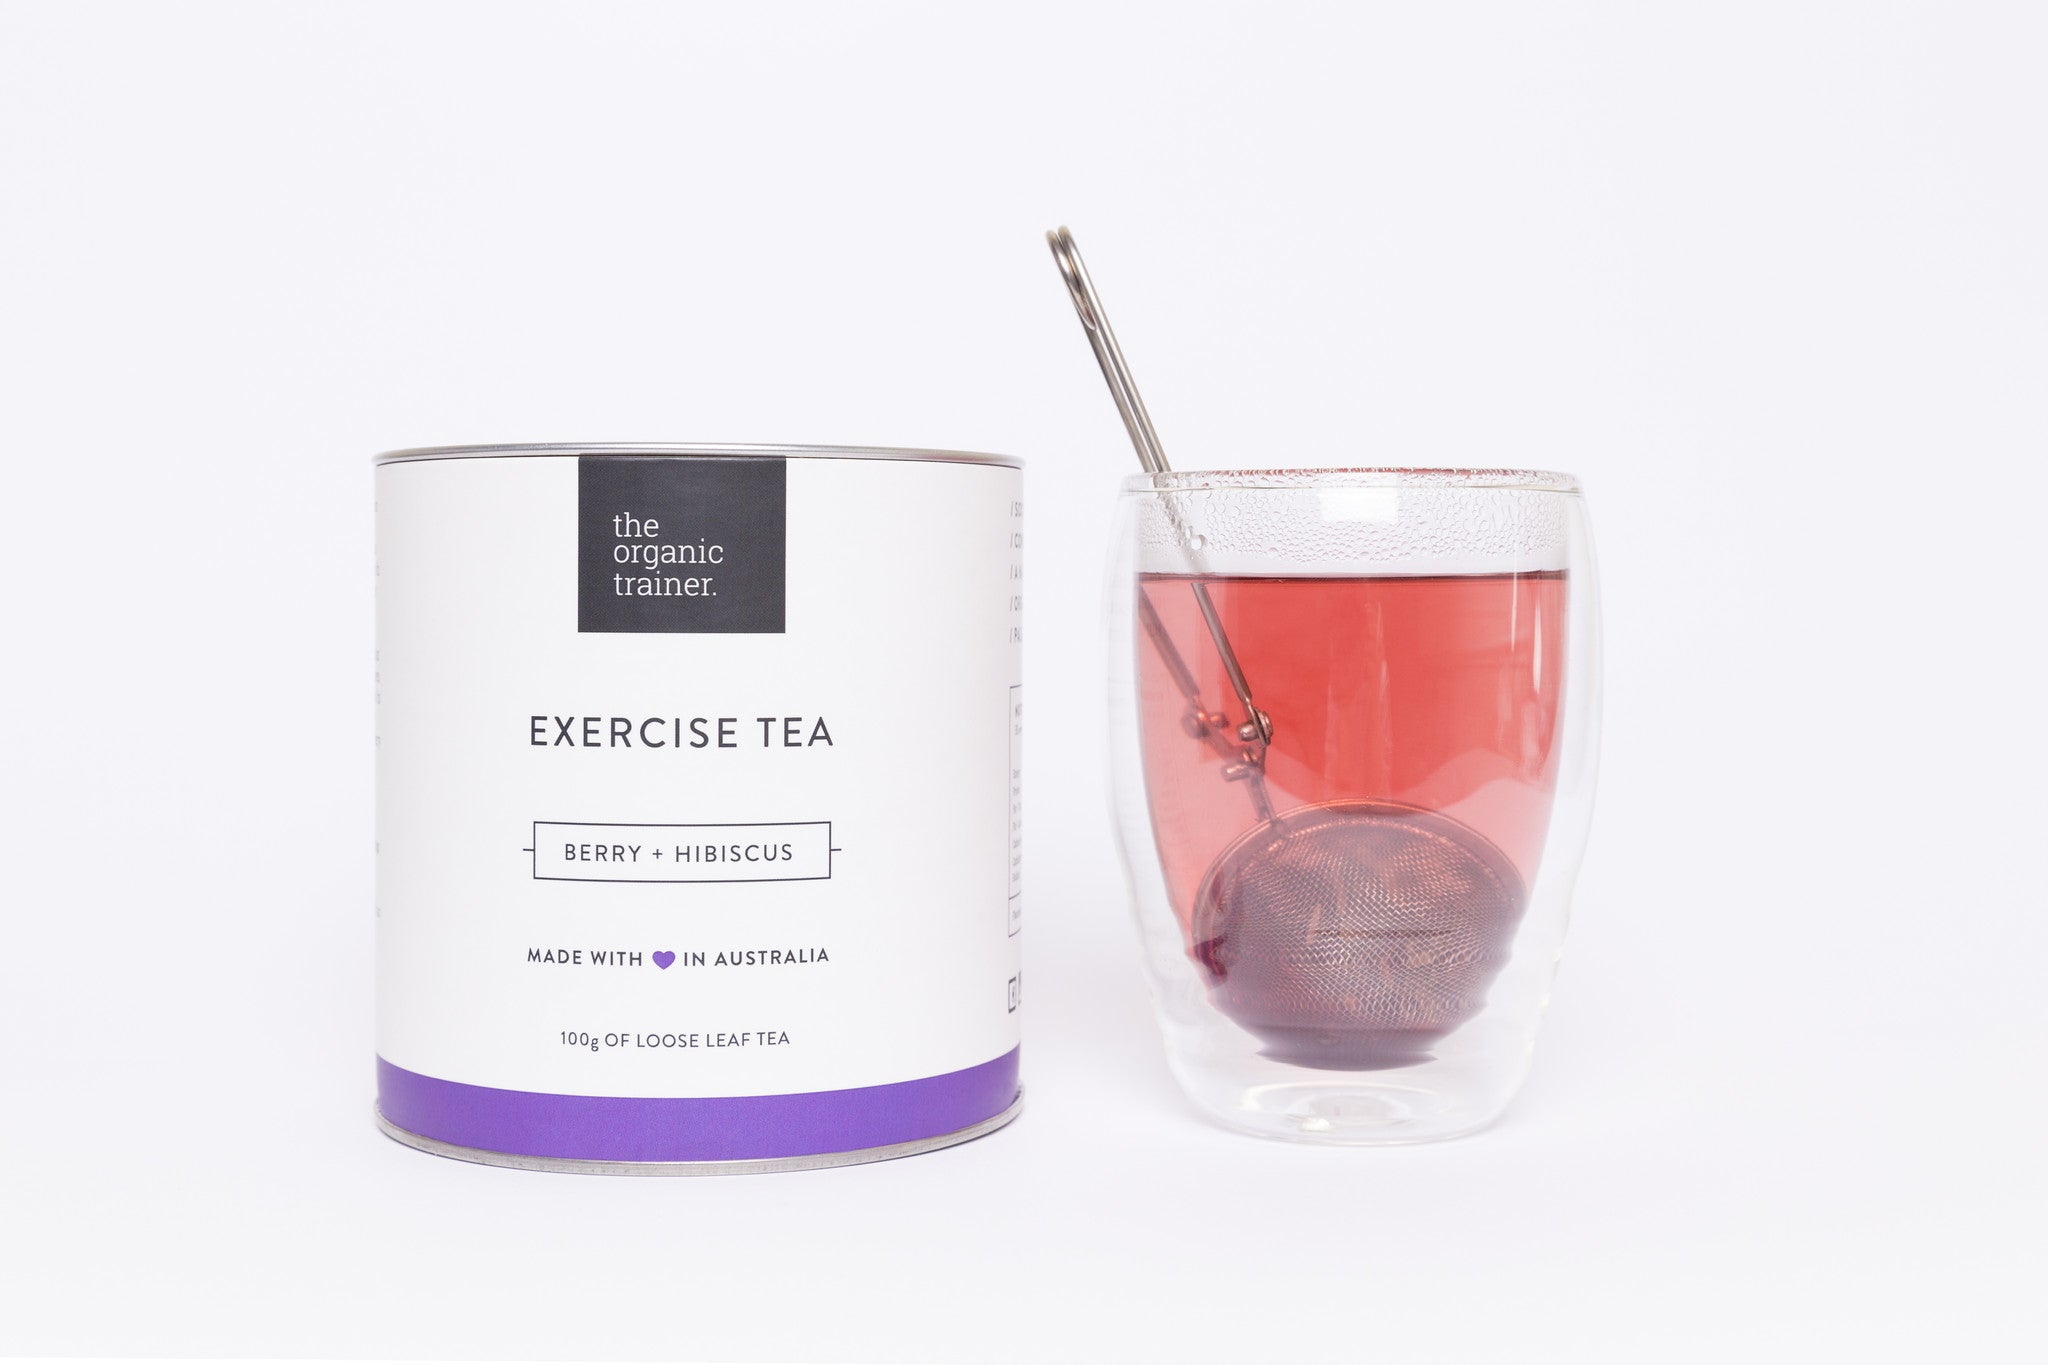 The Organic Trainer Exercise Tea